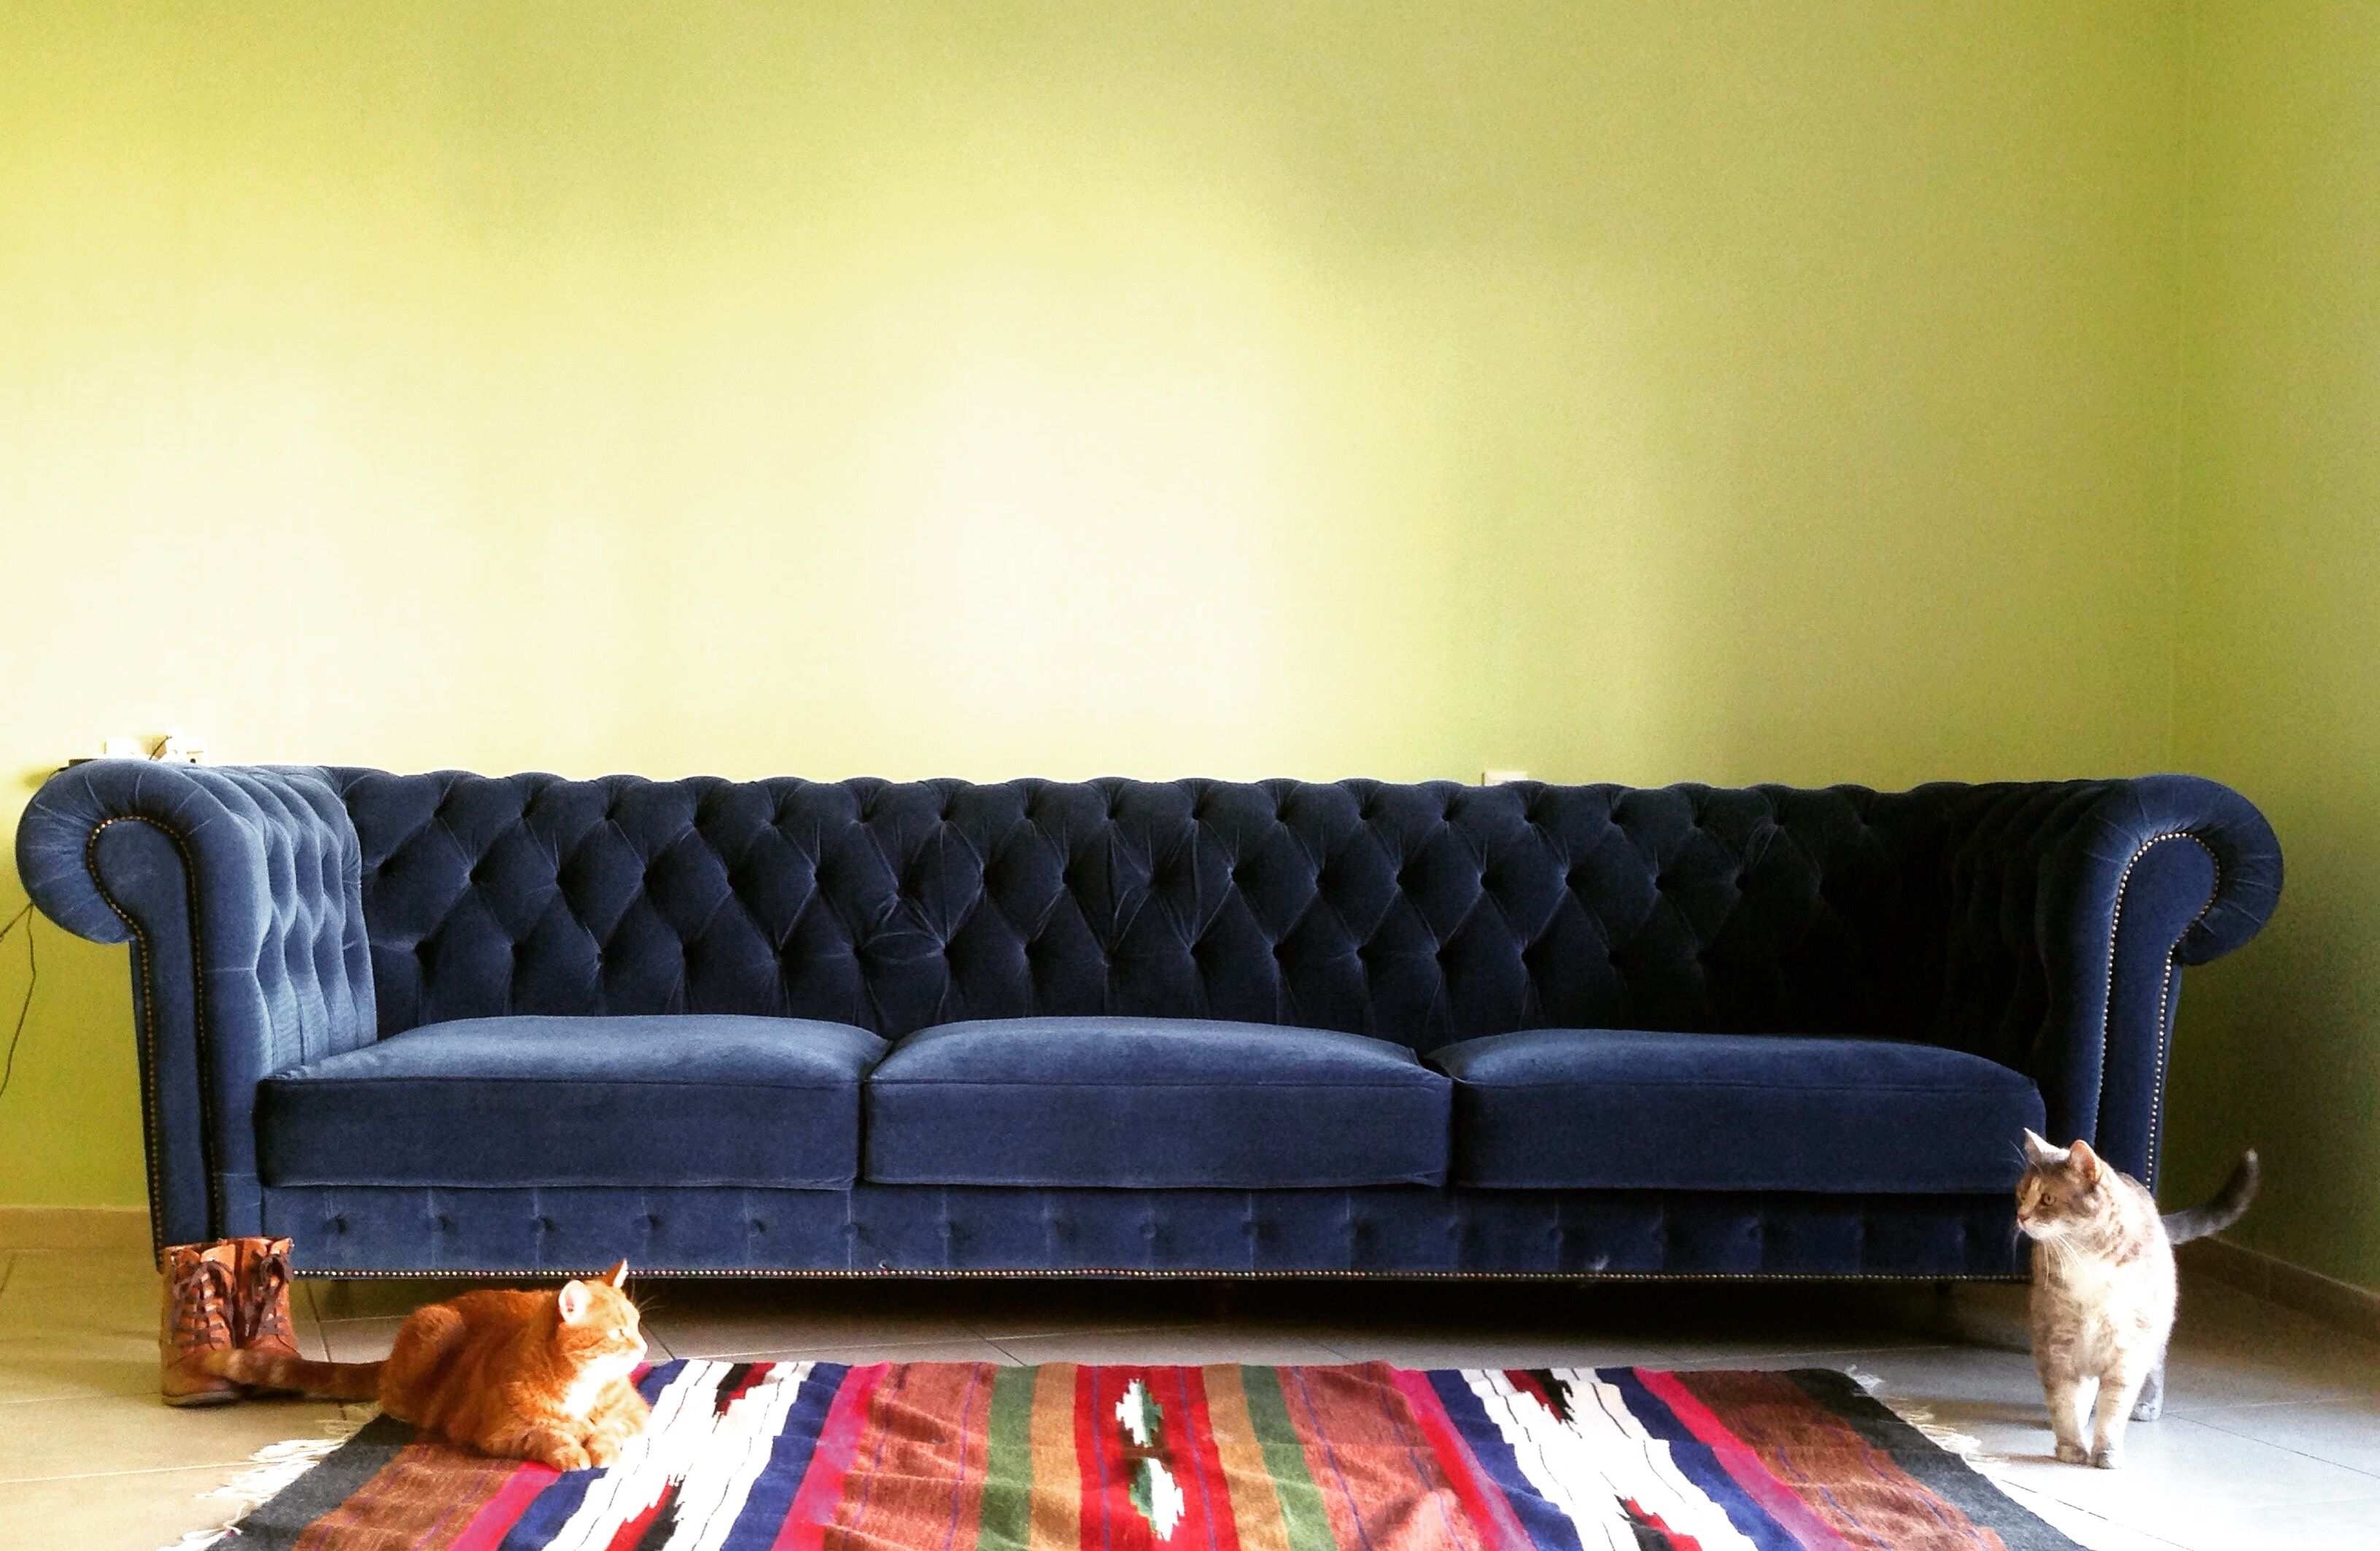 Tag: Furniture Stores In Israel. The Most Beautiful Sofa In The World